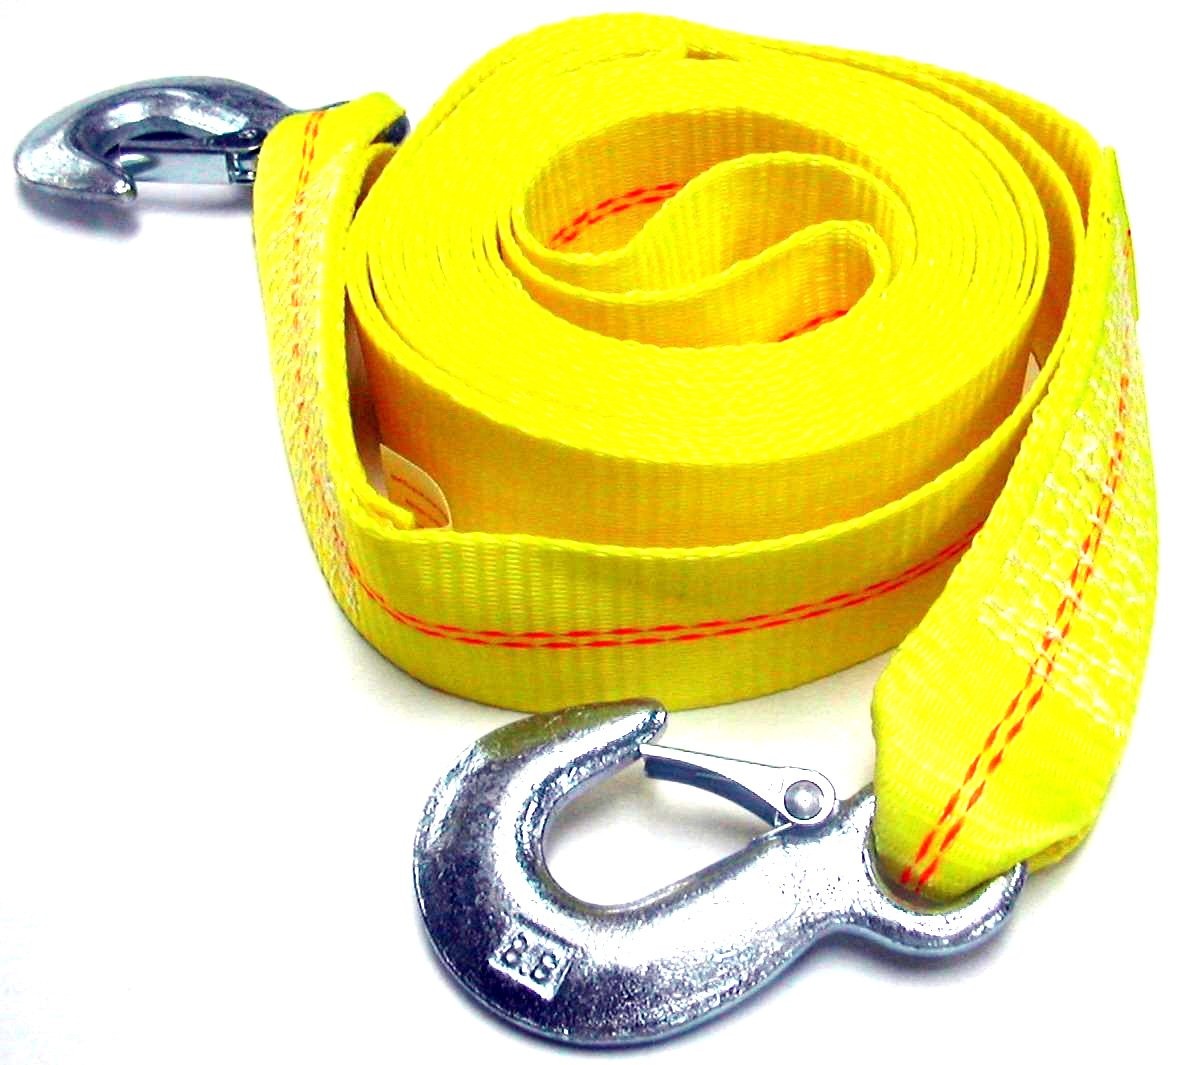 2 X 30 Hardware Factory Store HFS Polyester Tow Strap Rope 2 Hooks 10,000lb Towing Recovery 11599 R 4.5 Ton 2 Inch X 30 Ft